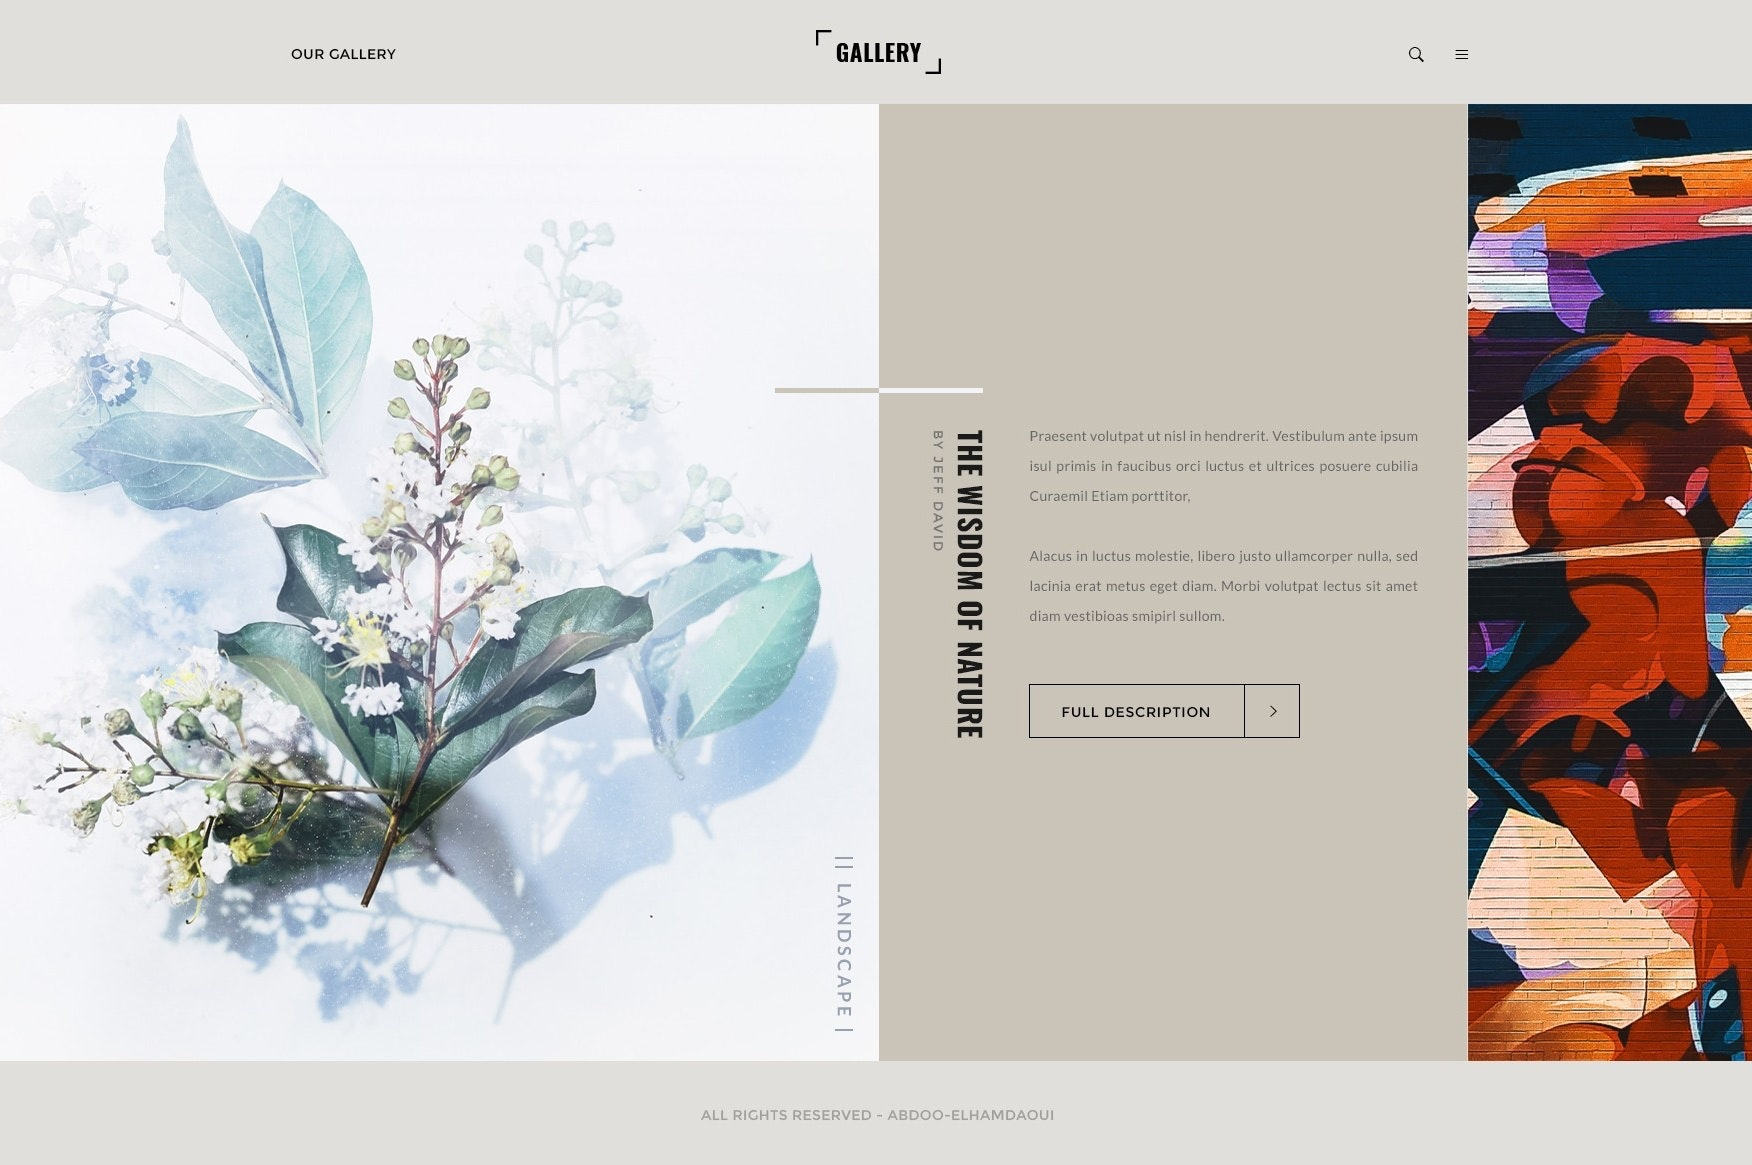 The wisdom of nature gallery display design